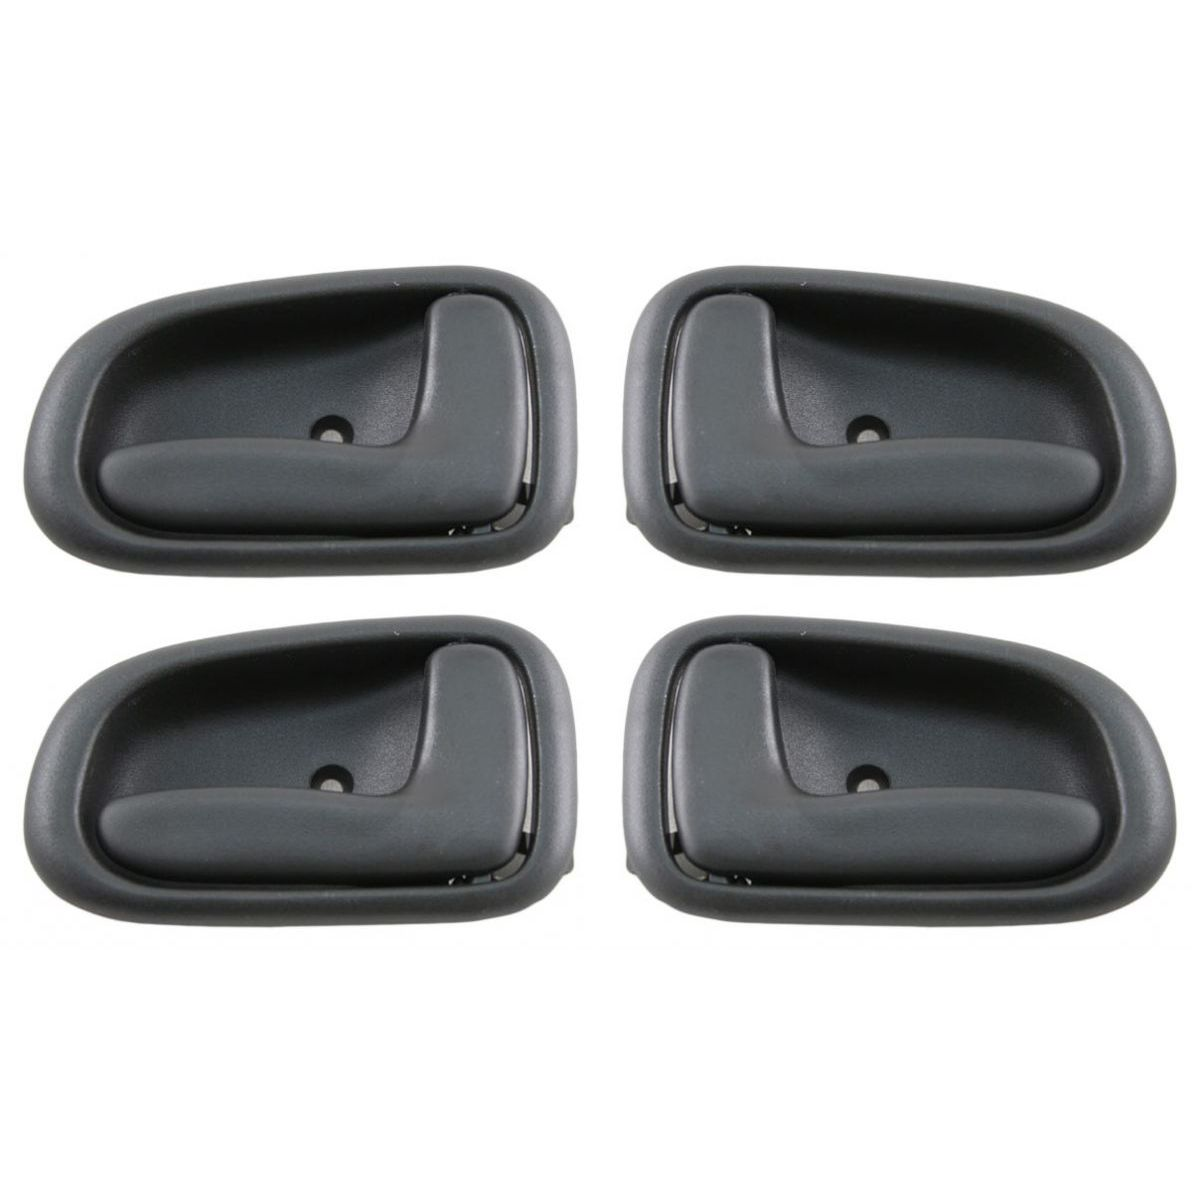 Dark gray inner inside interior door handle 4 piece kit Toyota corolla door handle interior